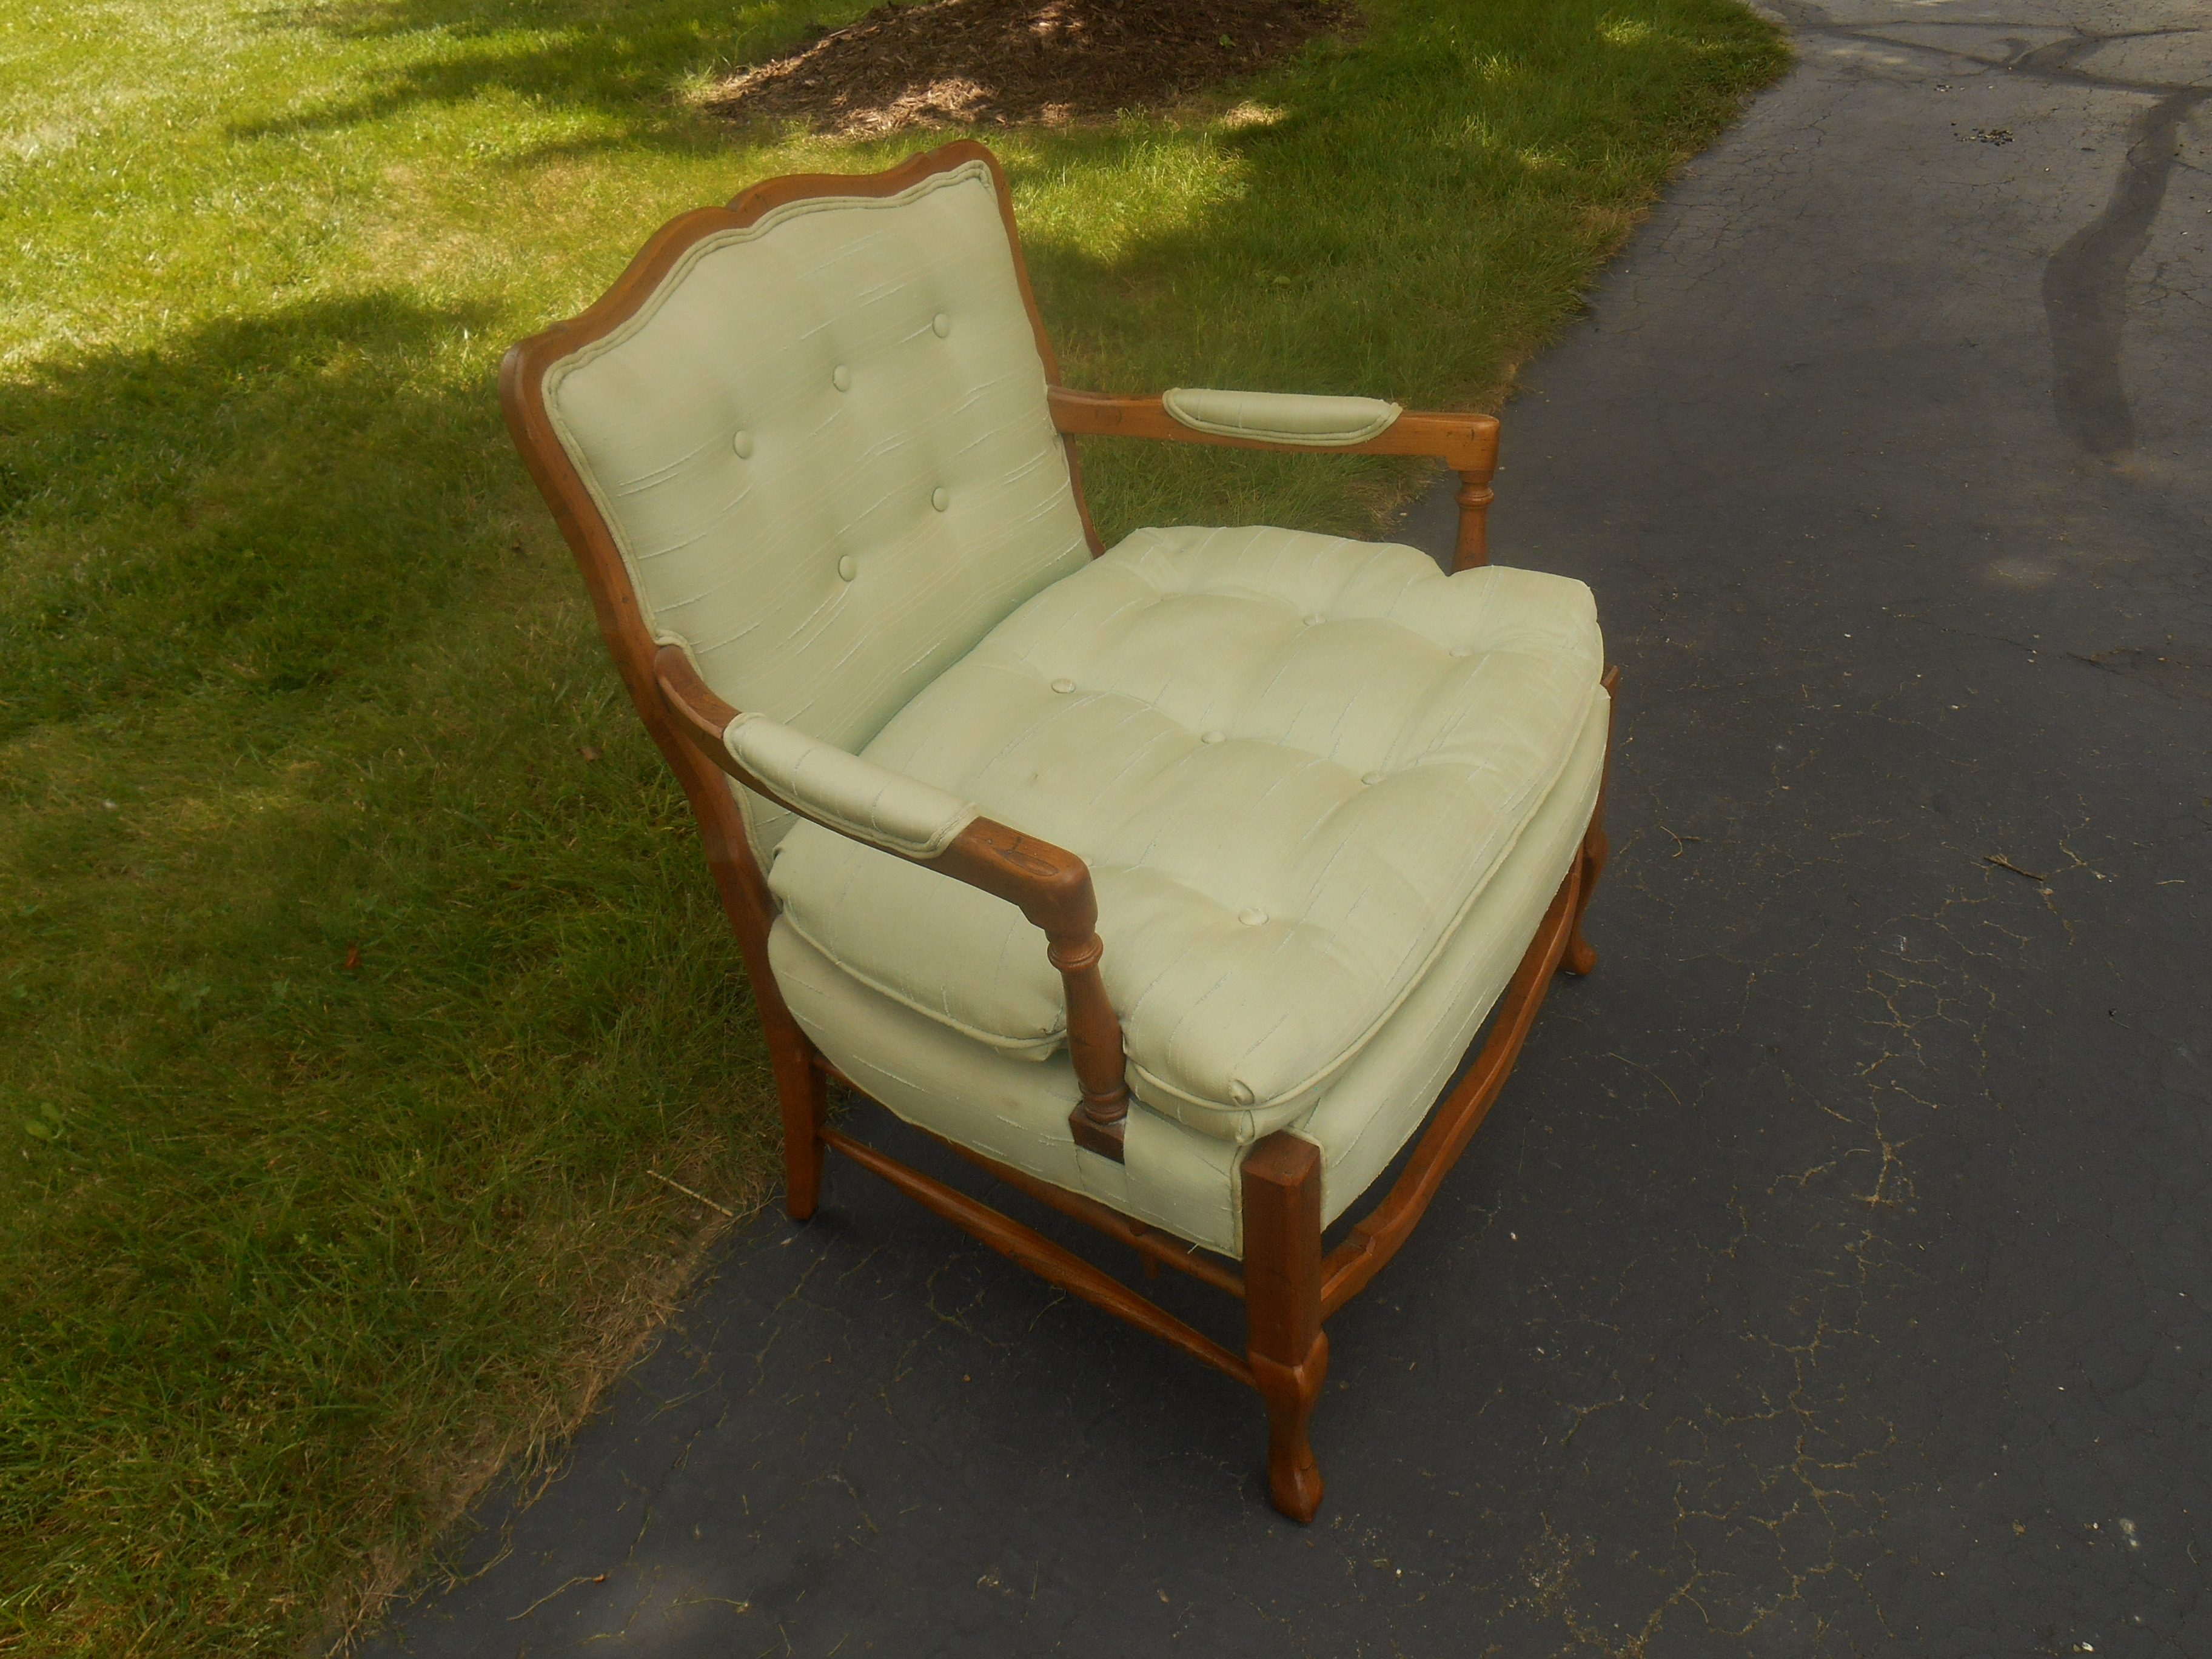 Captivating North Hickory Furniture Co. Lounge Chair   Image 4 Of 5